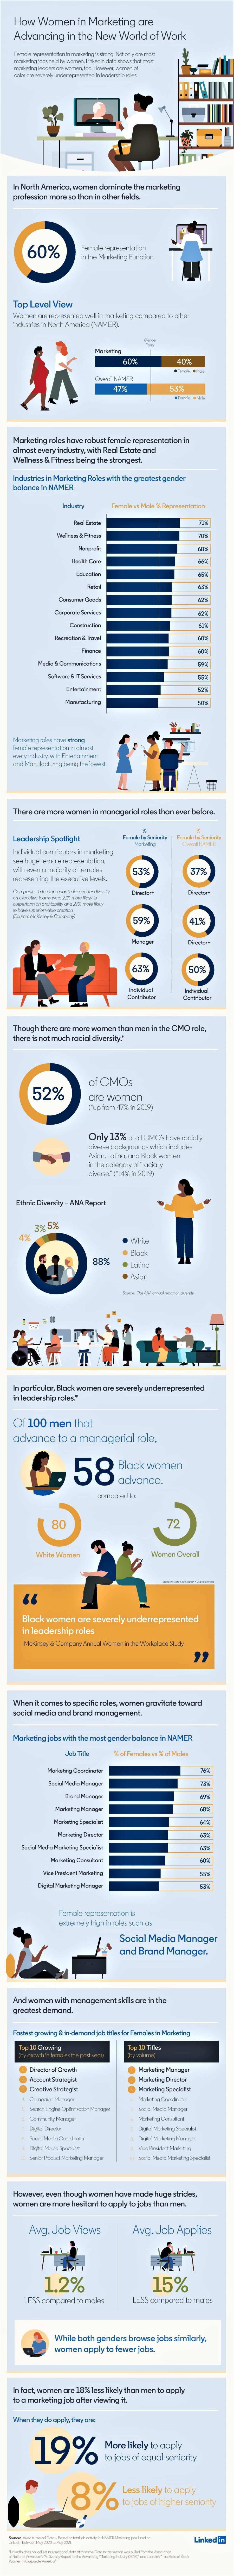 New Data on Women in Marketing Careers